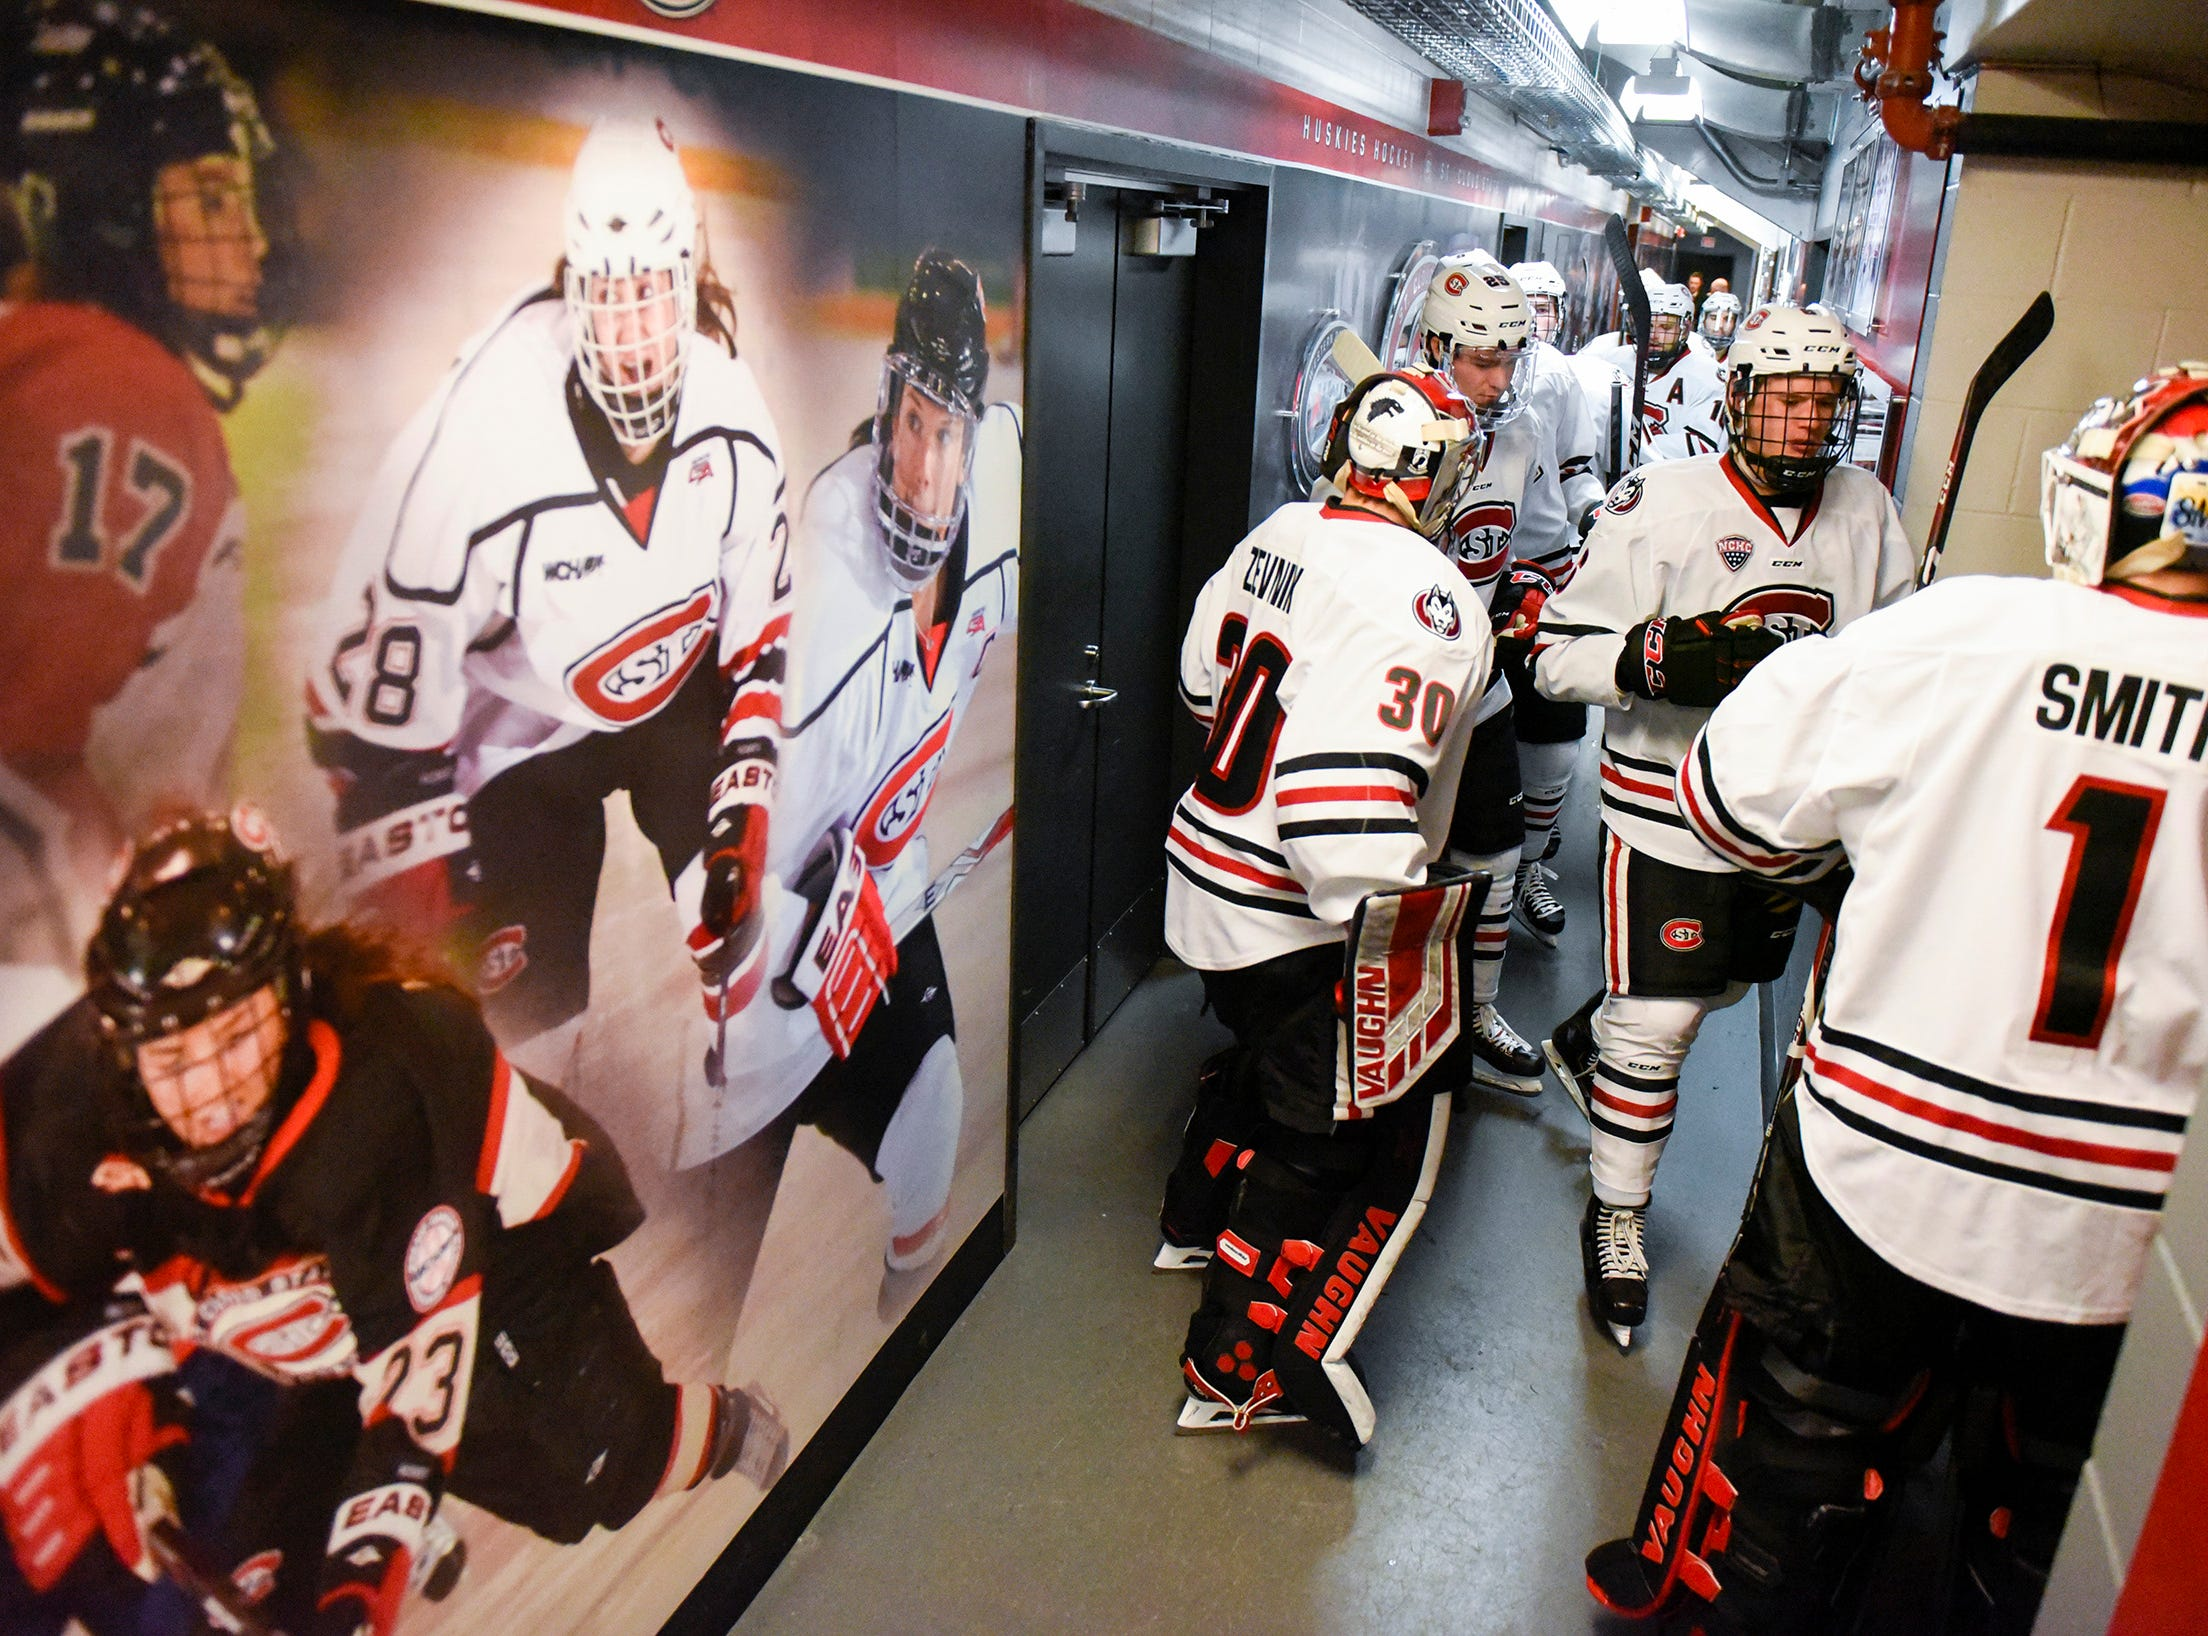 St. Cloud State goes back on the ice for the start of the second period against Nebraska-Omaha Saturday, Dec. 8, at the Herb Brooks National Hockey Center.